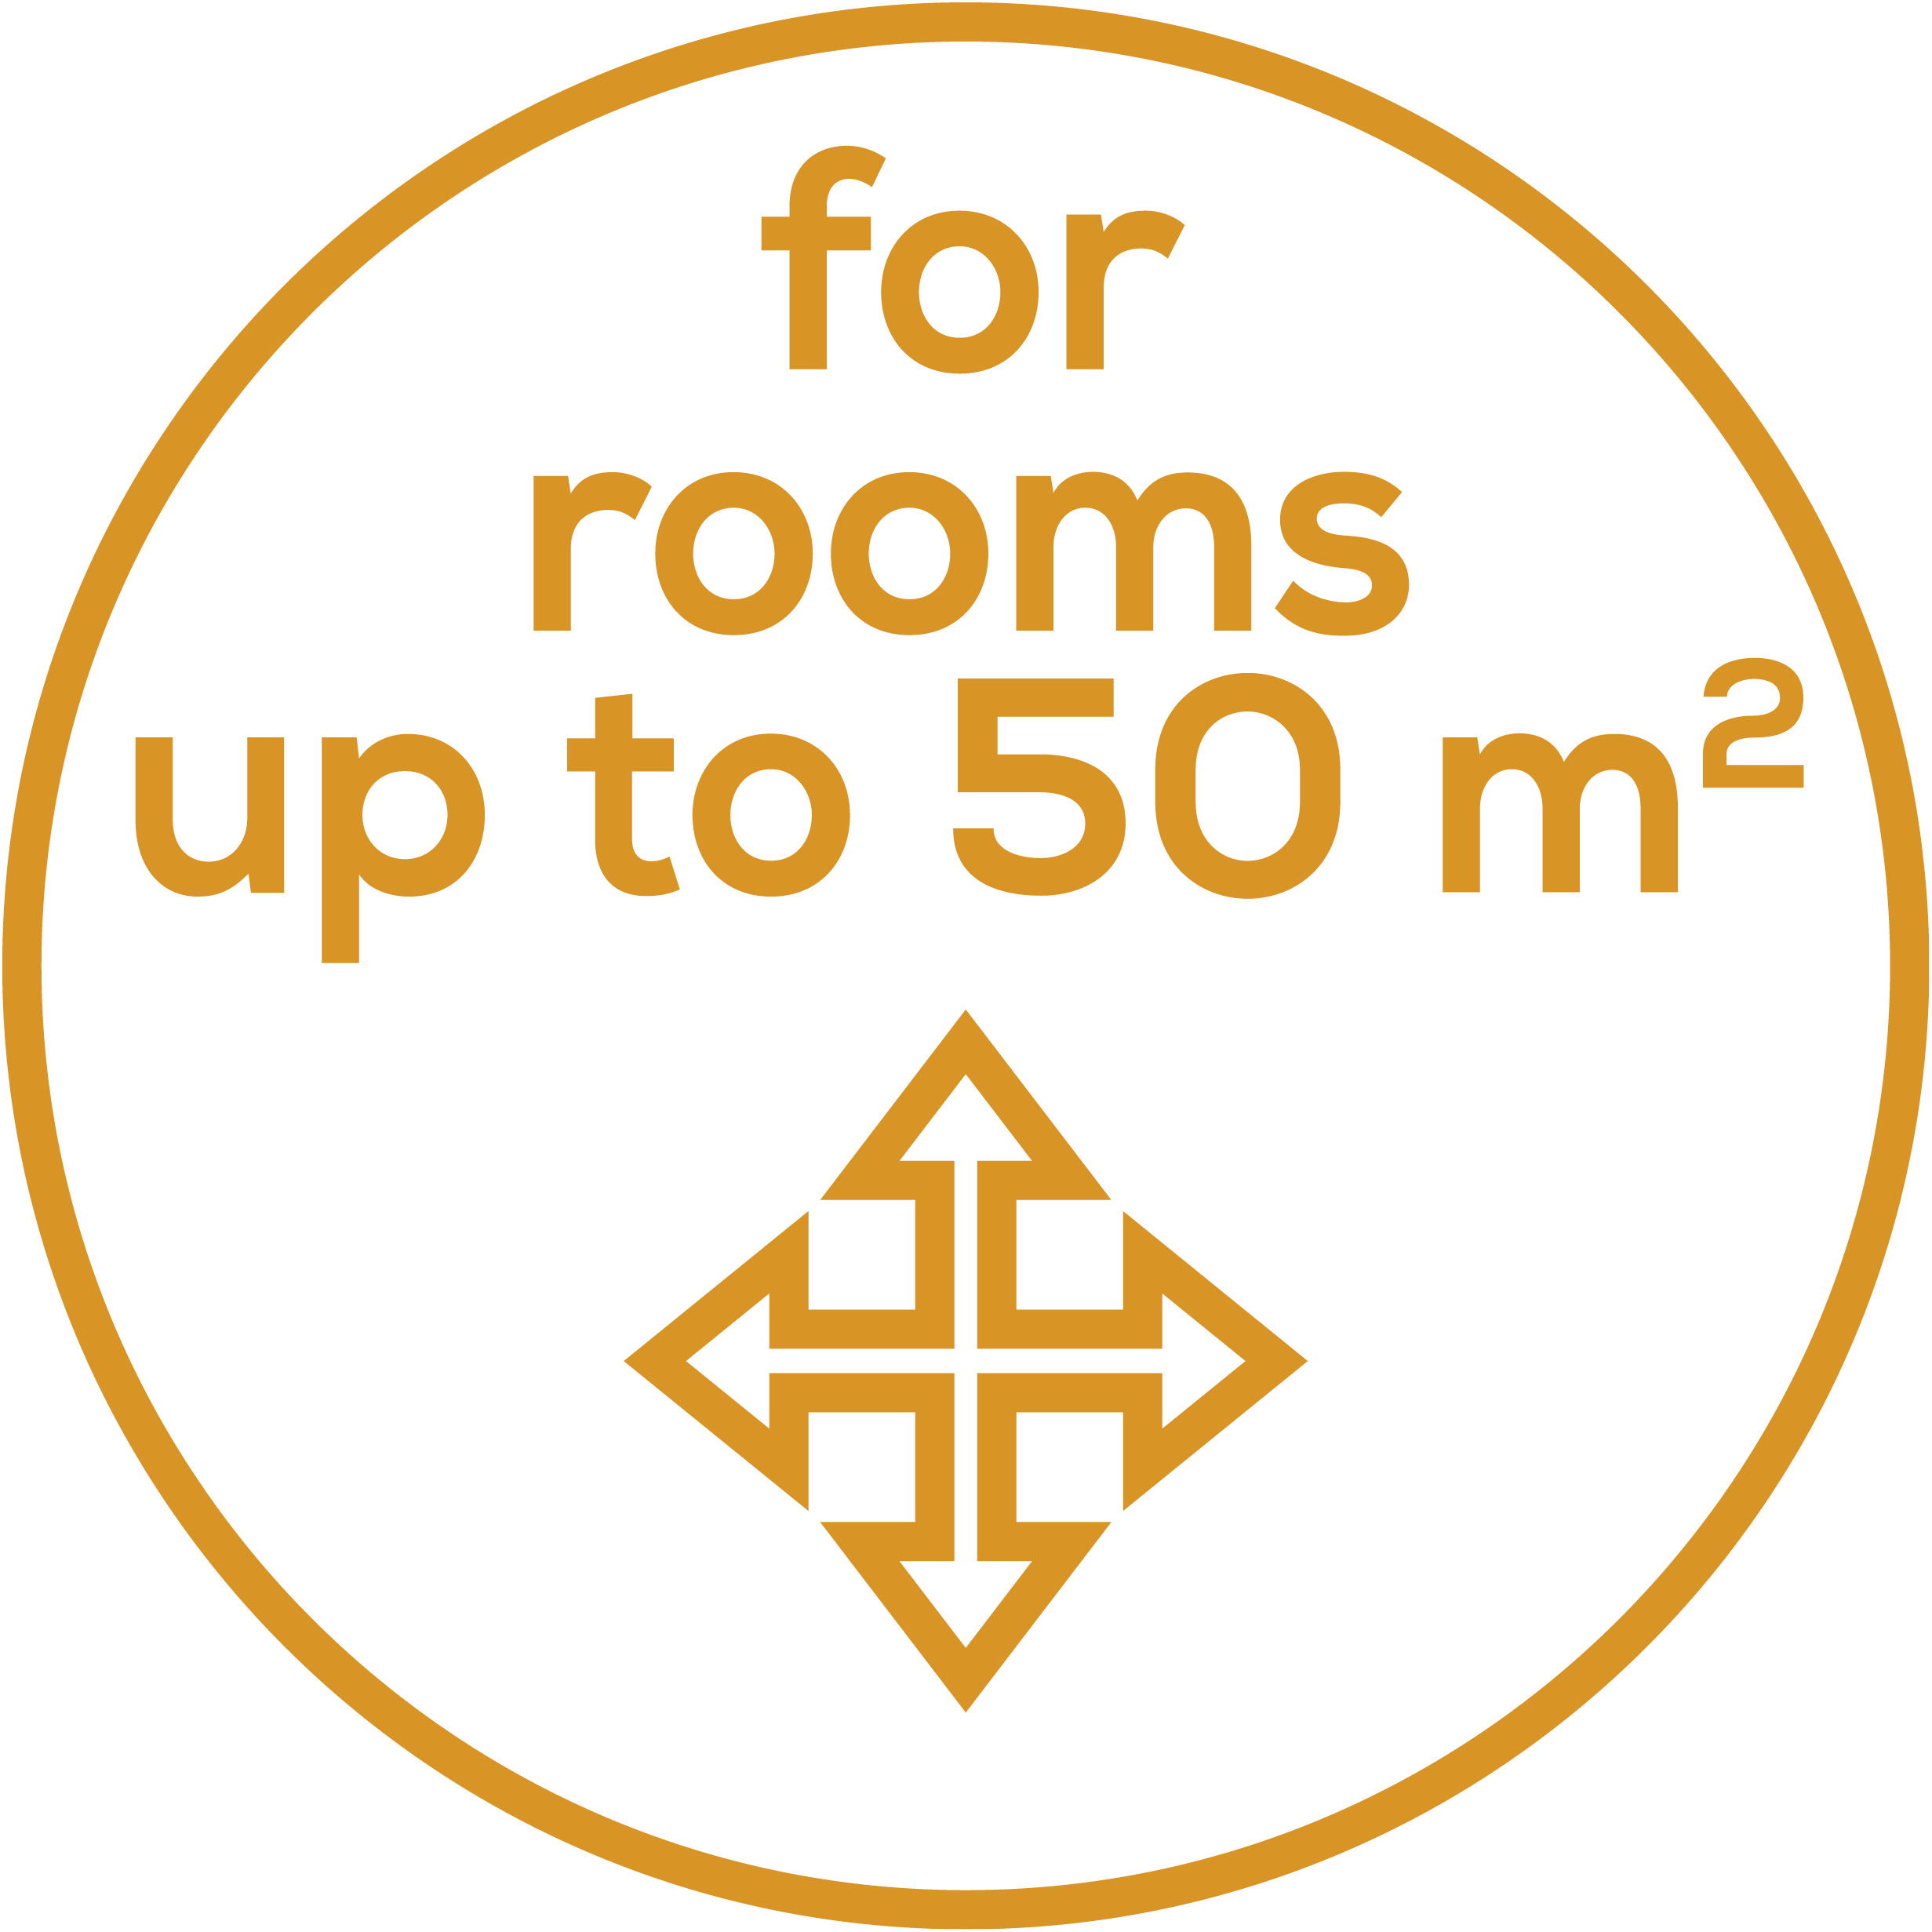 Room size Suitable for rooms up to 50 m²